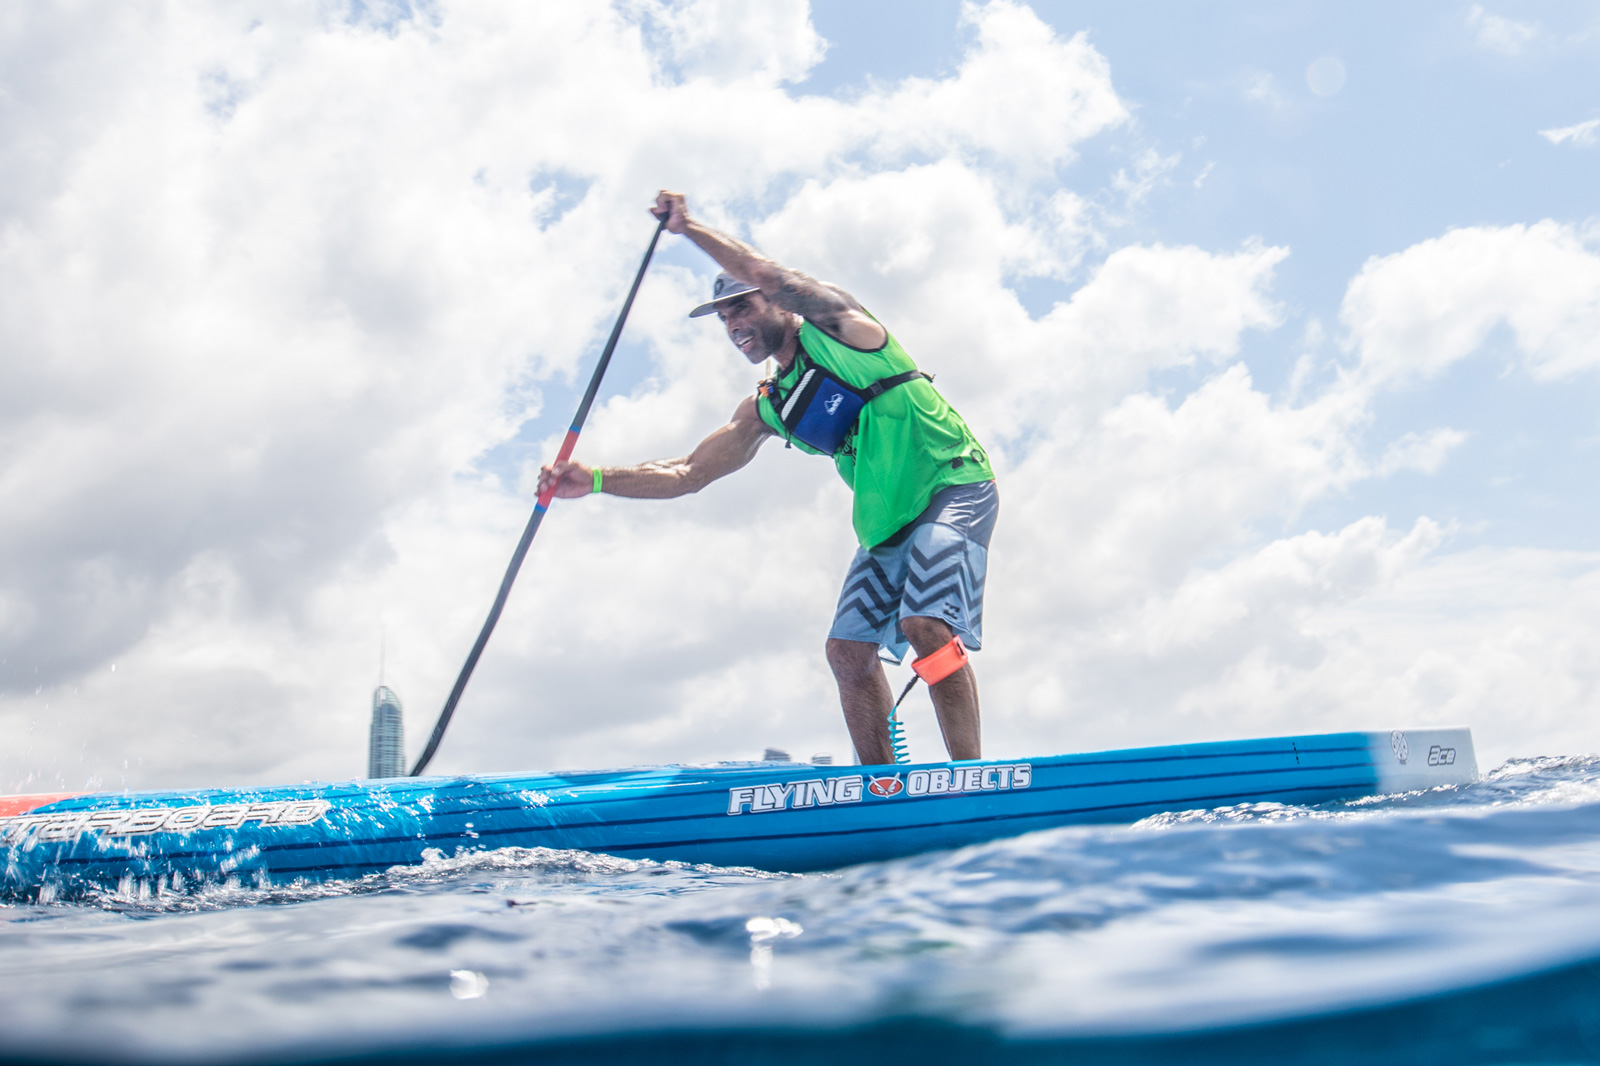 Starboard-12-Towers-2018-SUP-race-14-ace